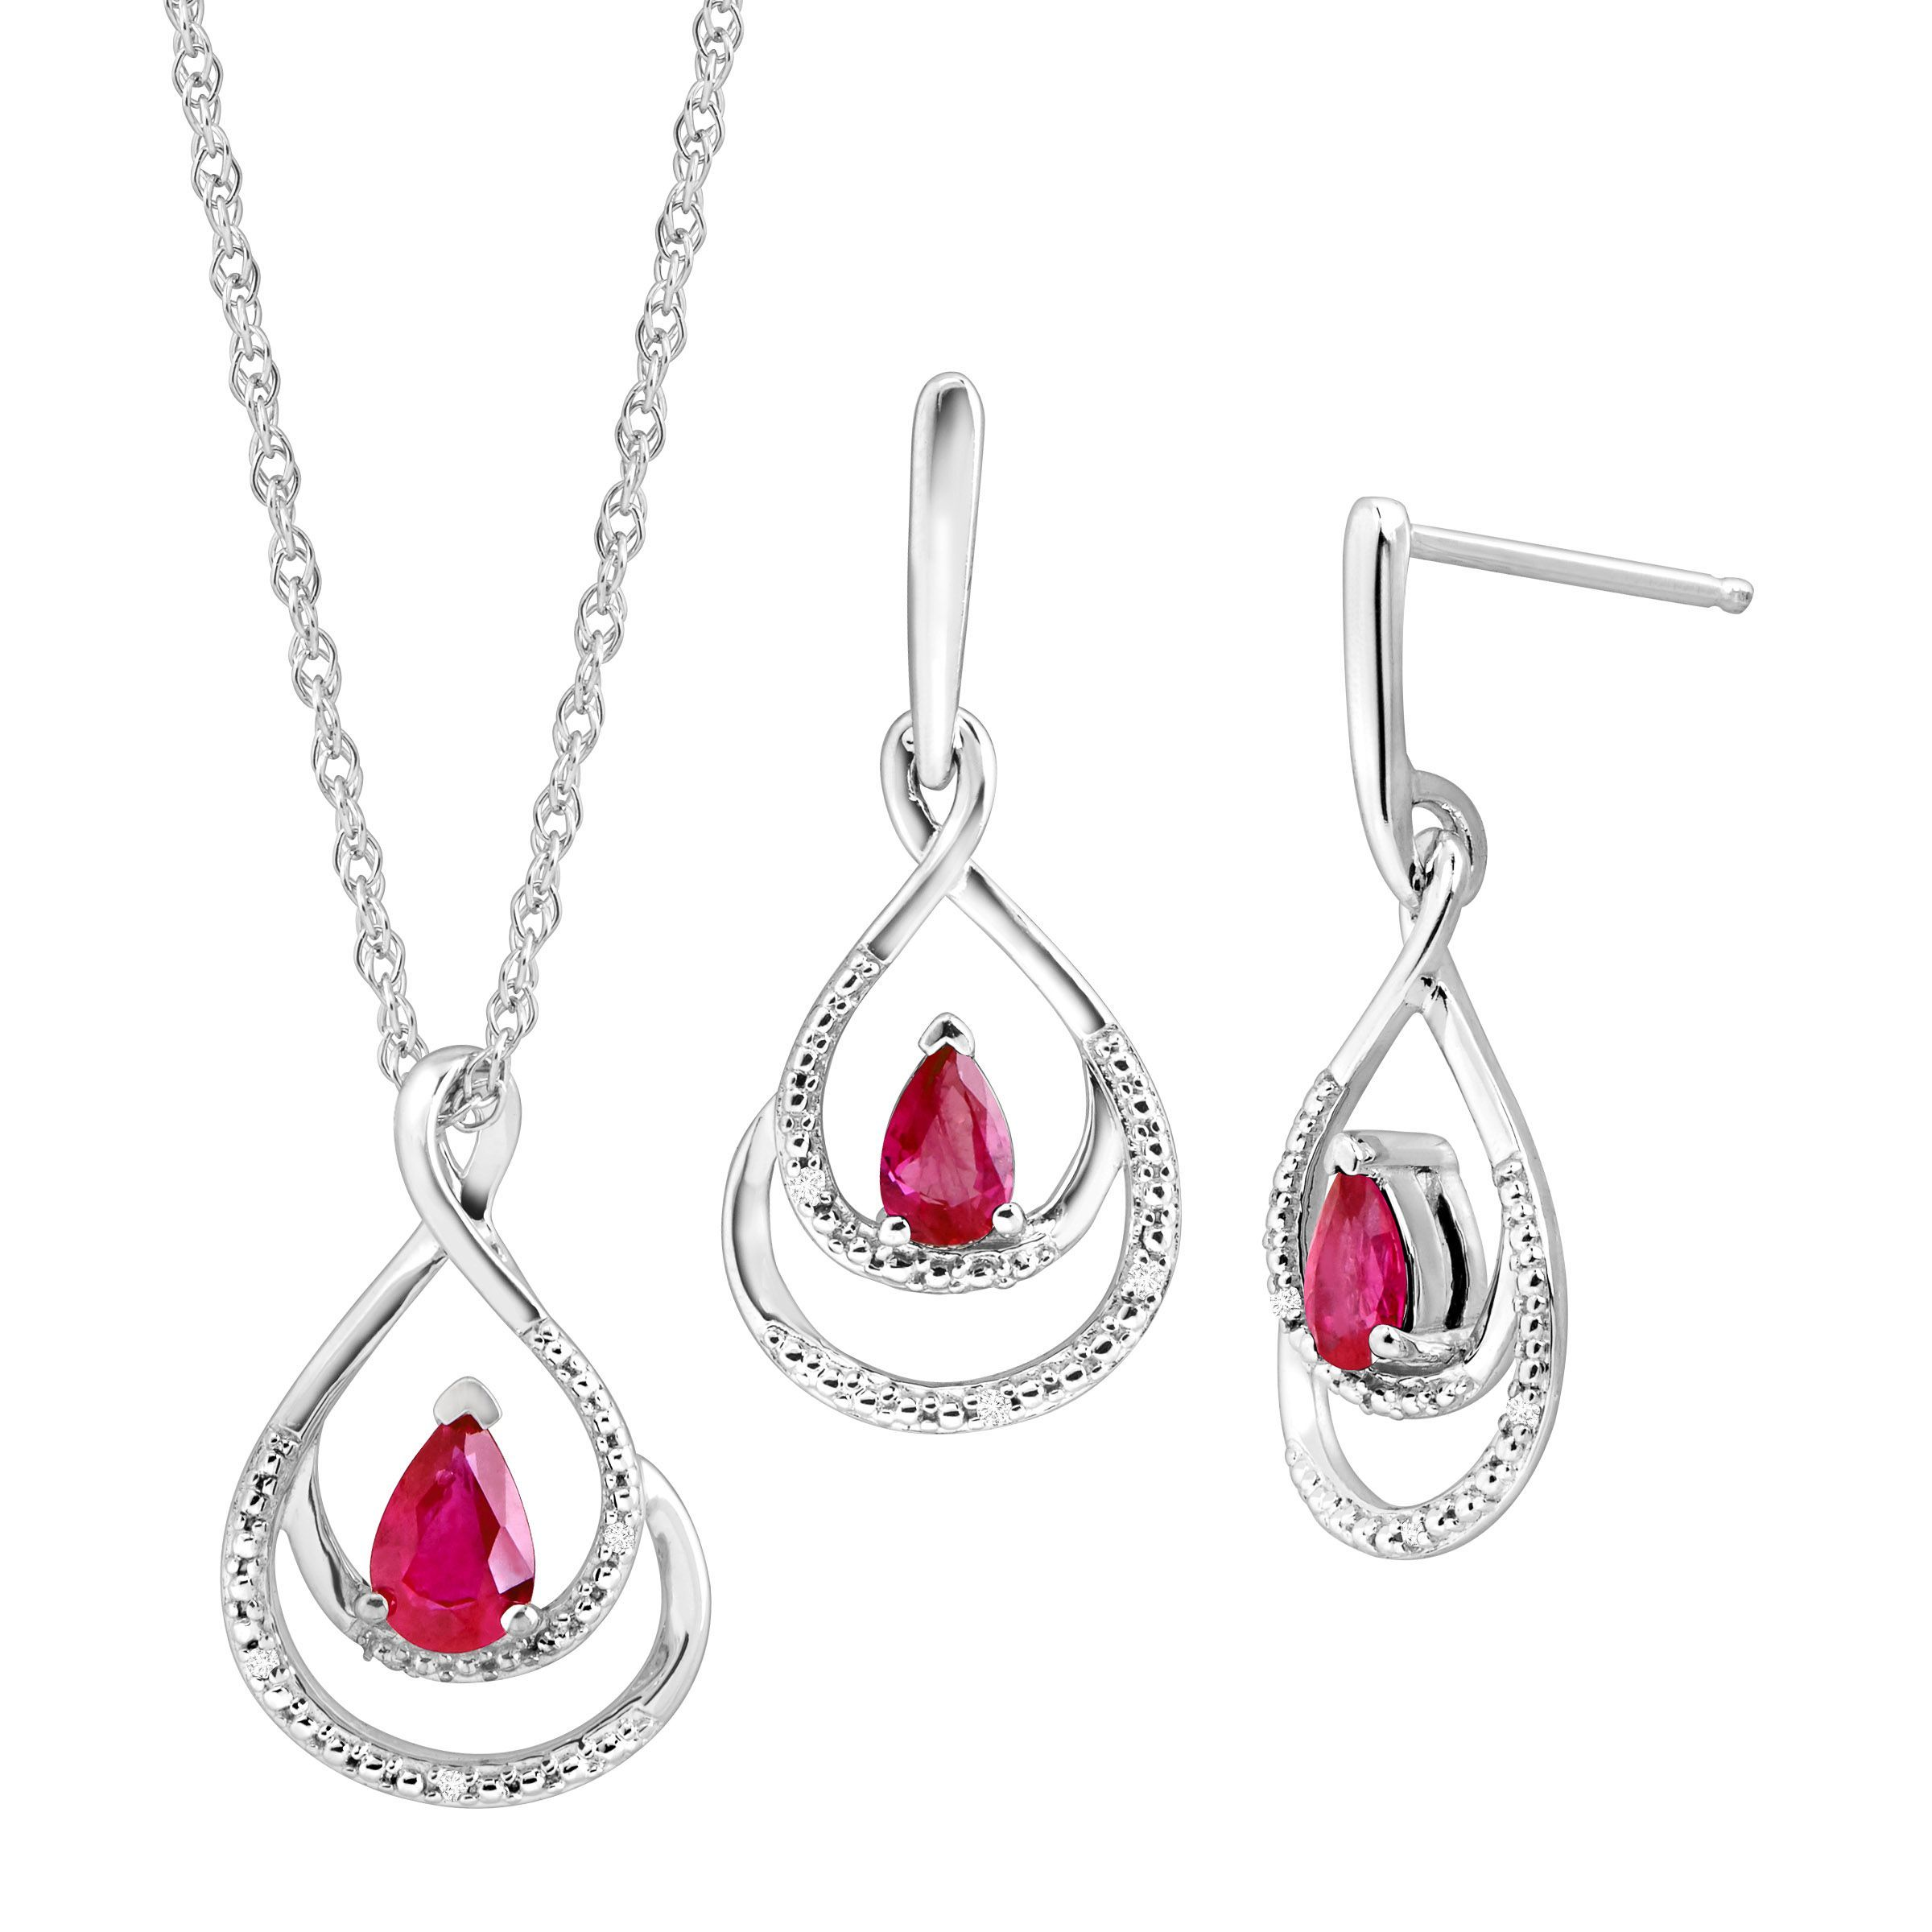 1 110 ct natural ruby pendant earrings set with diamonds in 1 110 ct natural ruby pendant earrings set with diamonds in sterling silver aloadofball Images